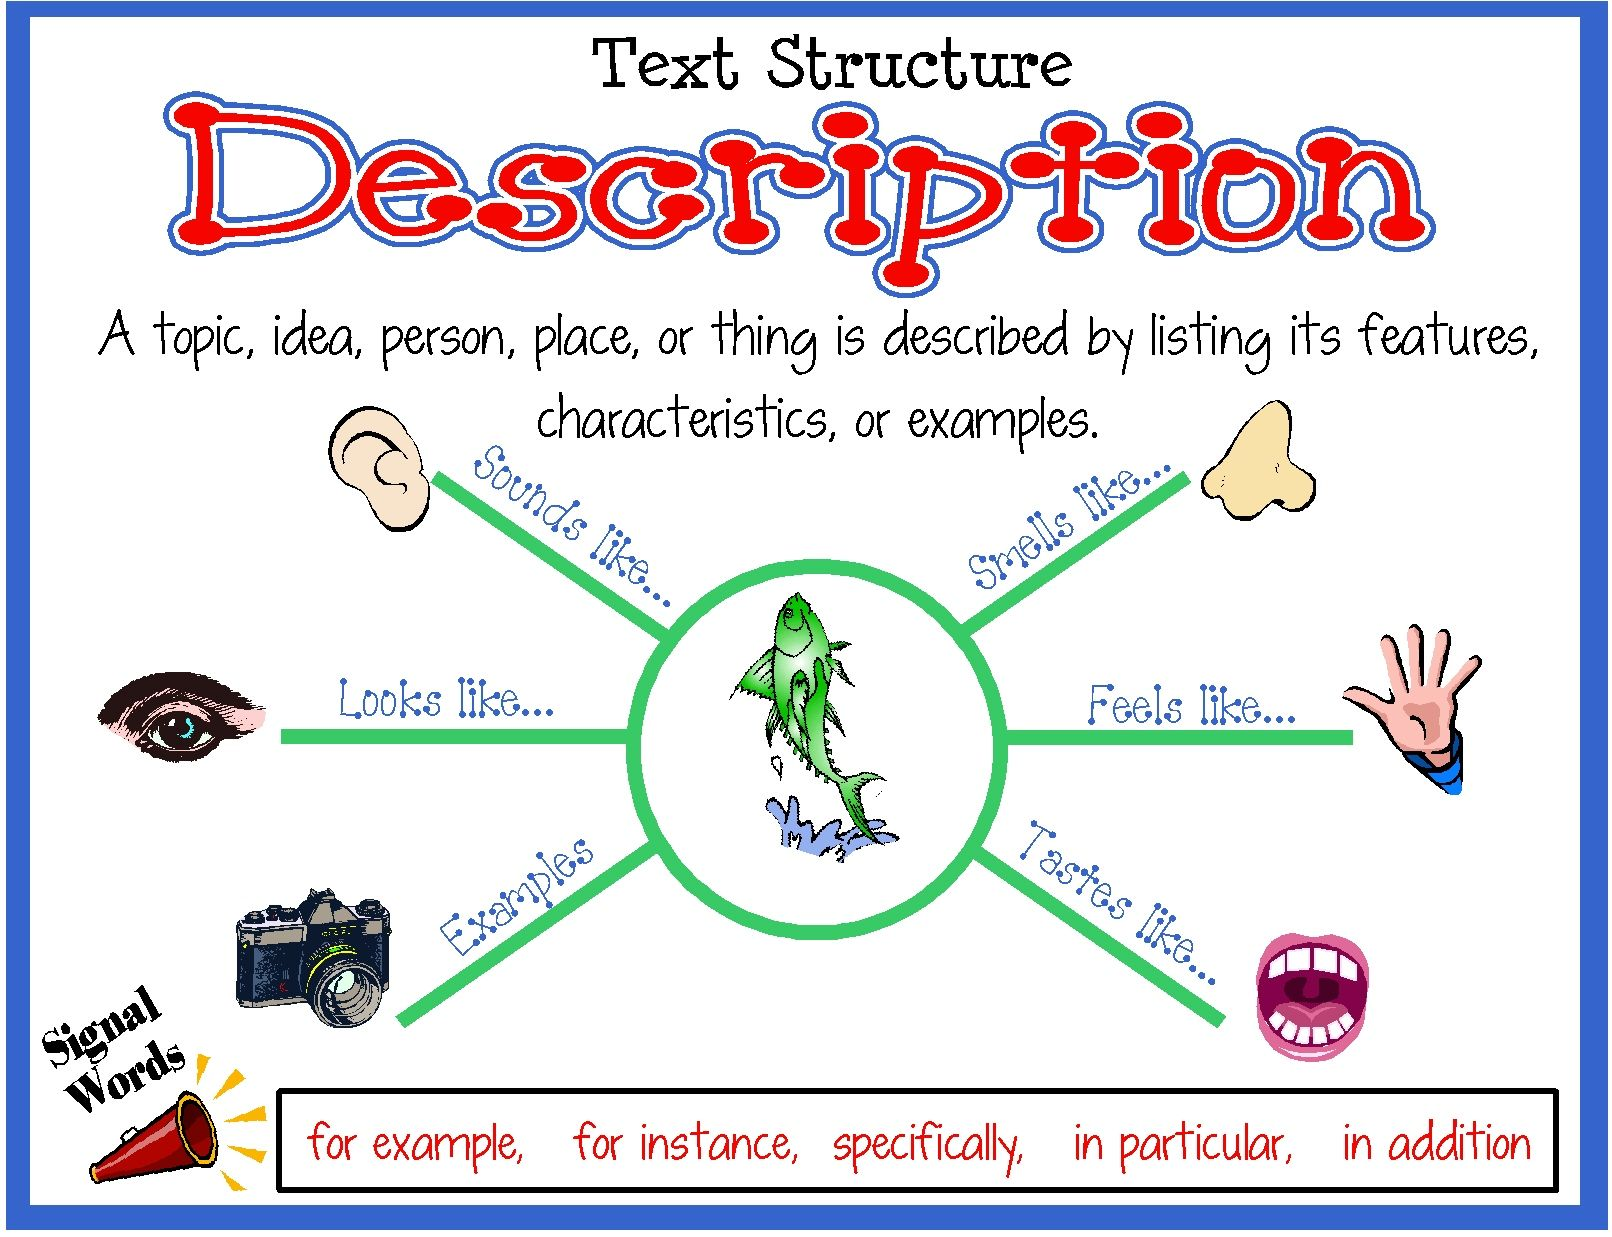 worksheet Text Structure Worksheets 4th Grade 78 best images about text structure on pinterest anchor charts texts and graphic organizers